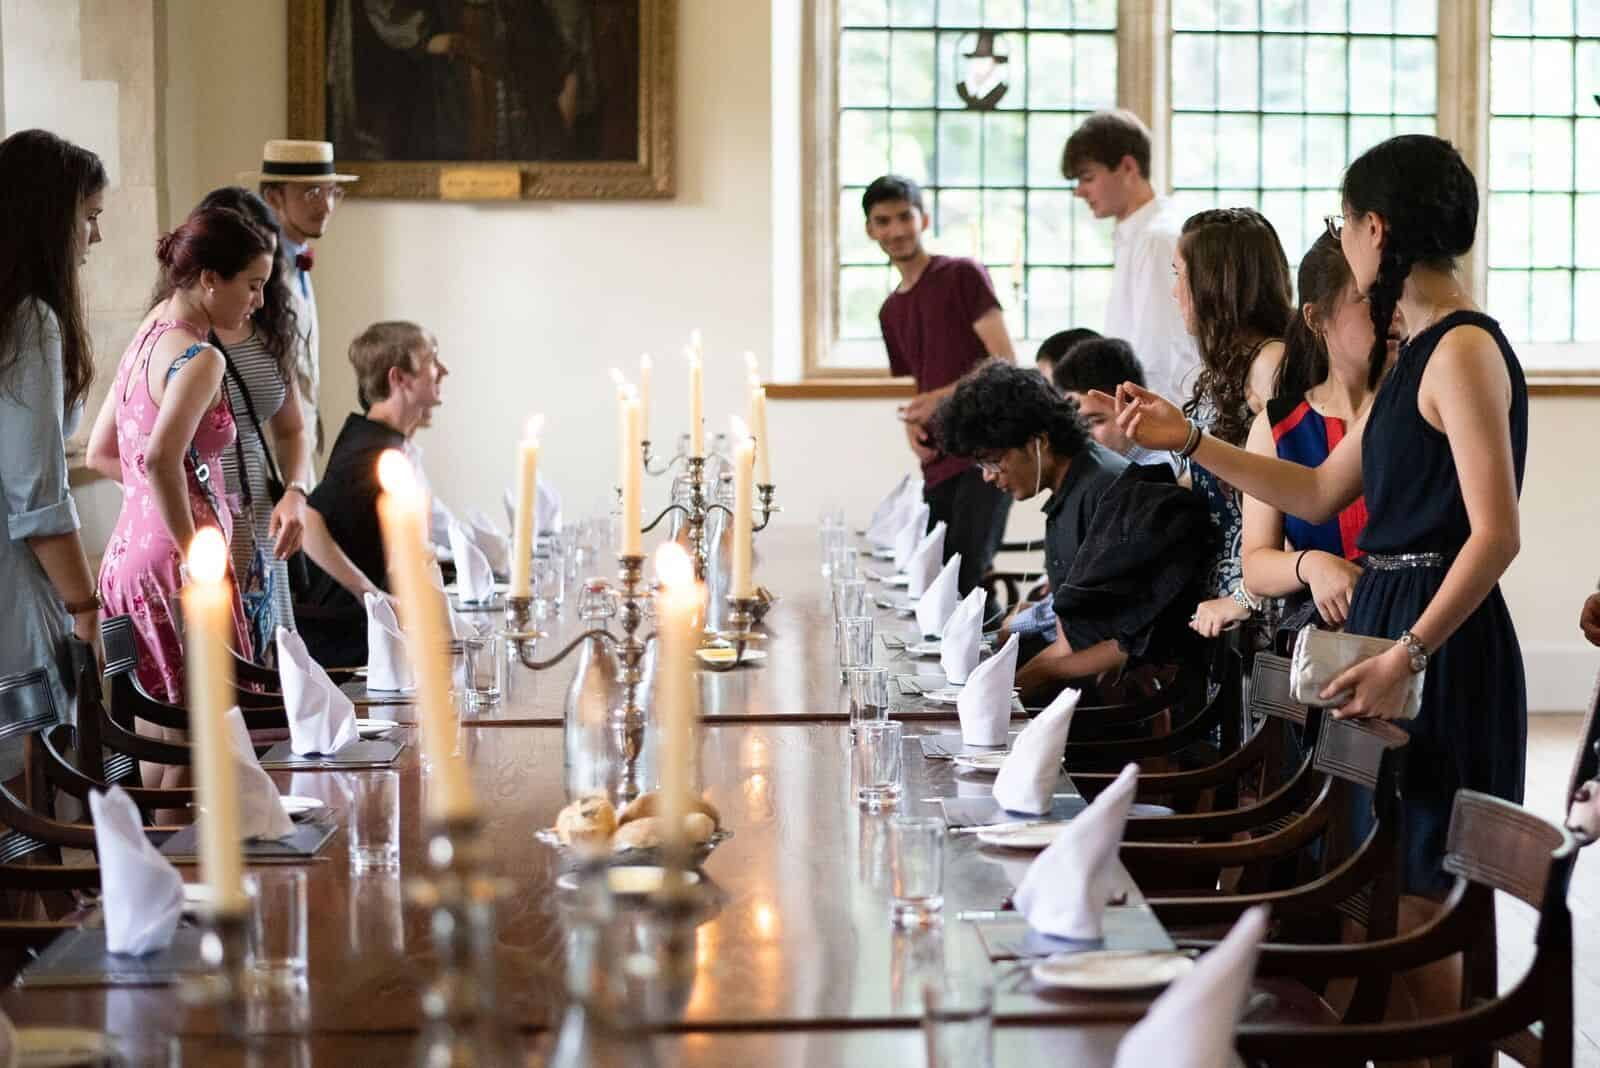 Student dinner at Wadham College